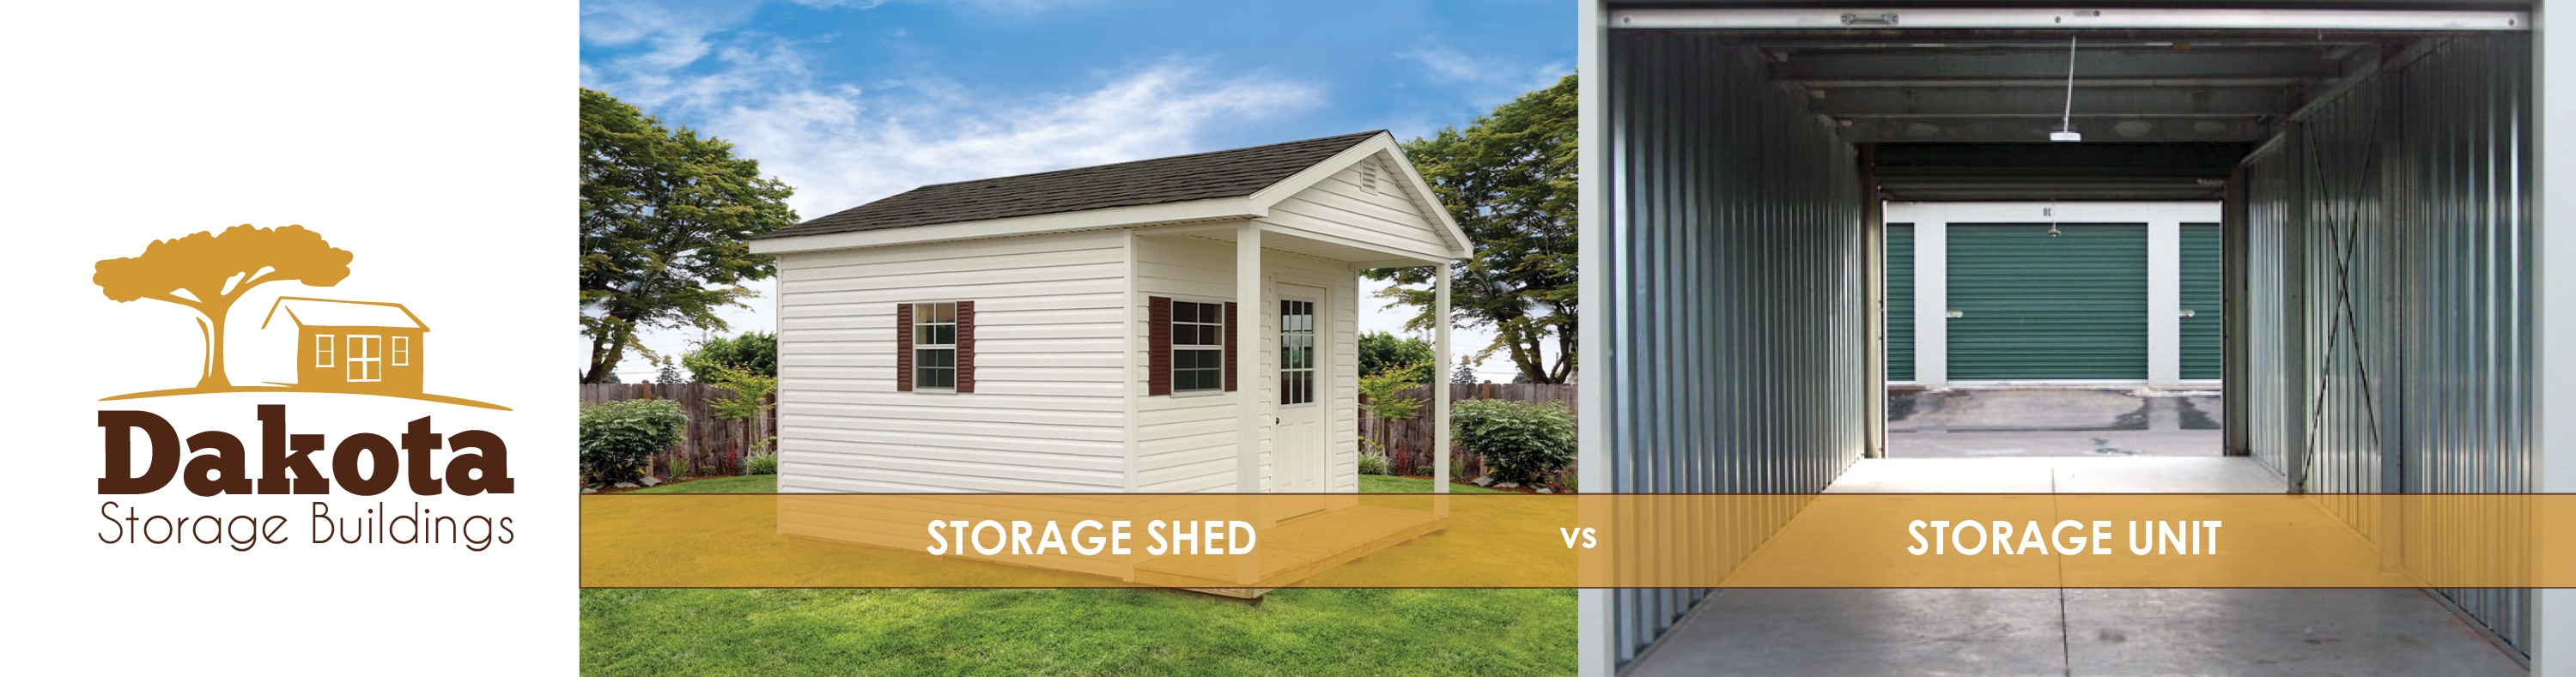 Storage Shed vs Storage Unit